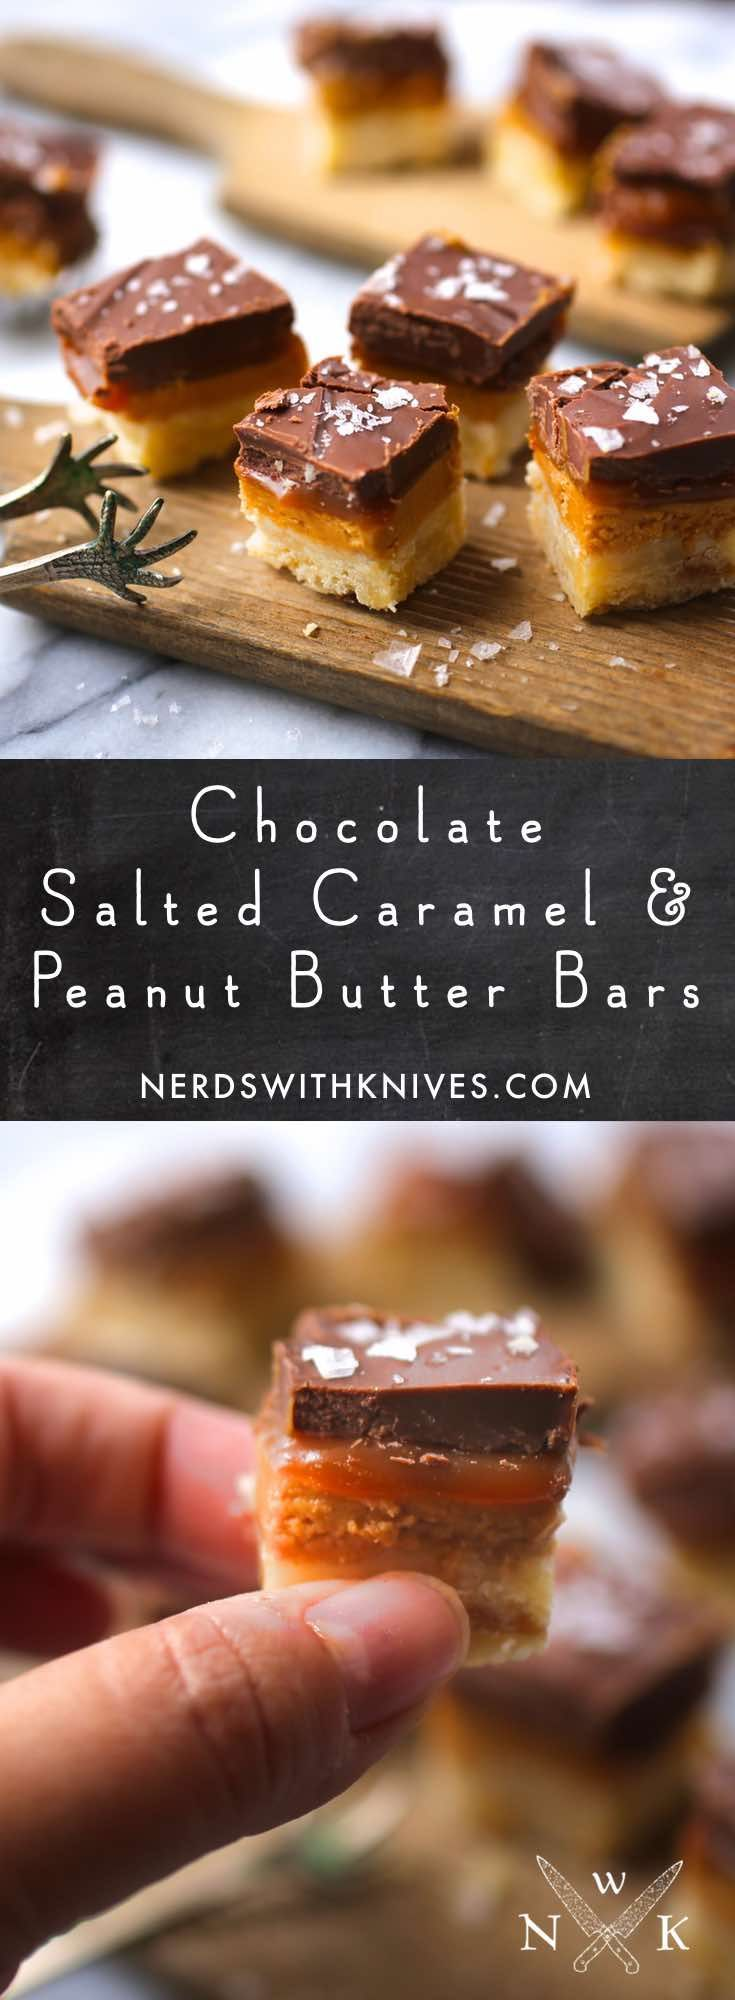 These salted caramel peanut butter bars – in miniature bite-size form – are about the best way to win over someone's heart. They may also offer you their kidneys, liver and spleen. They're that good.